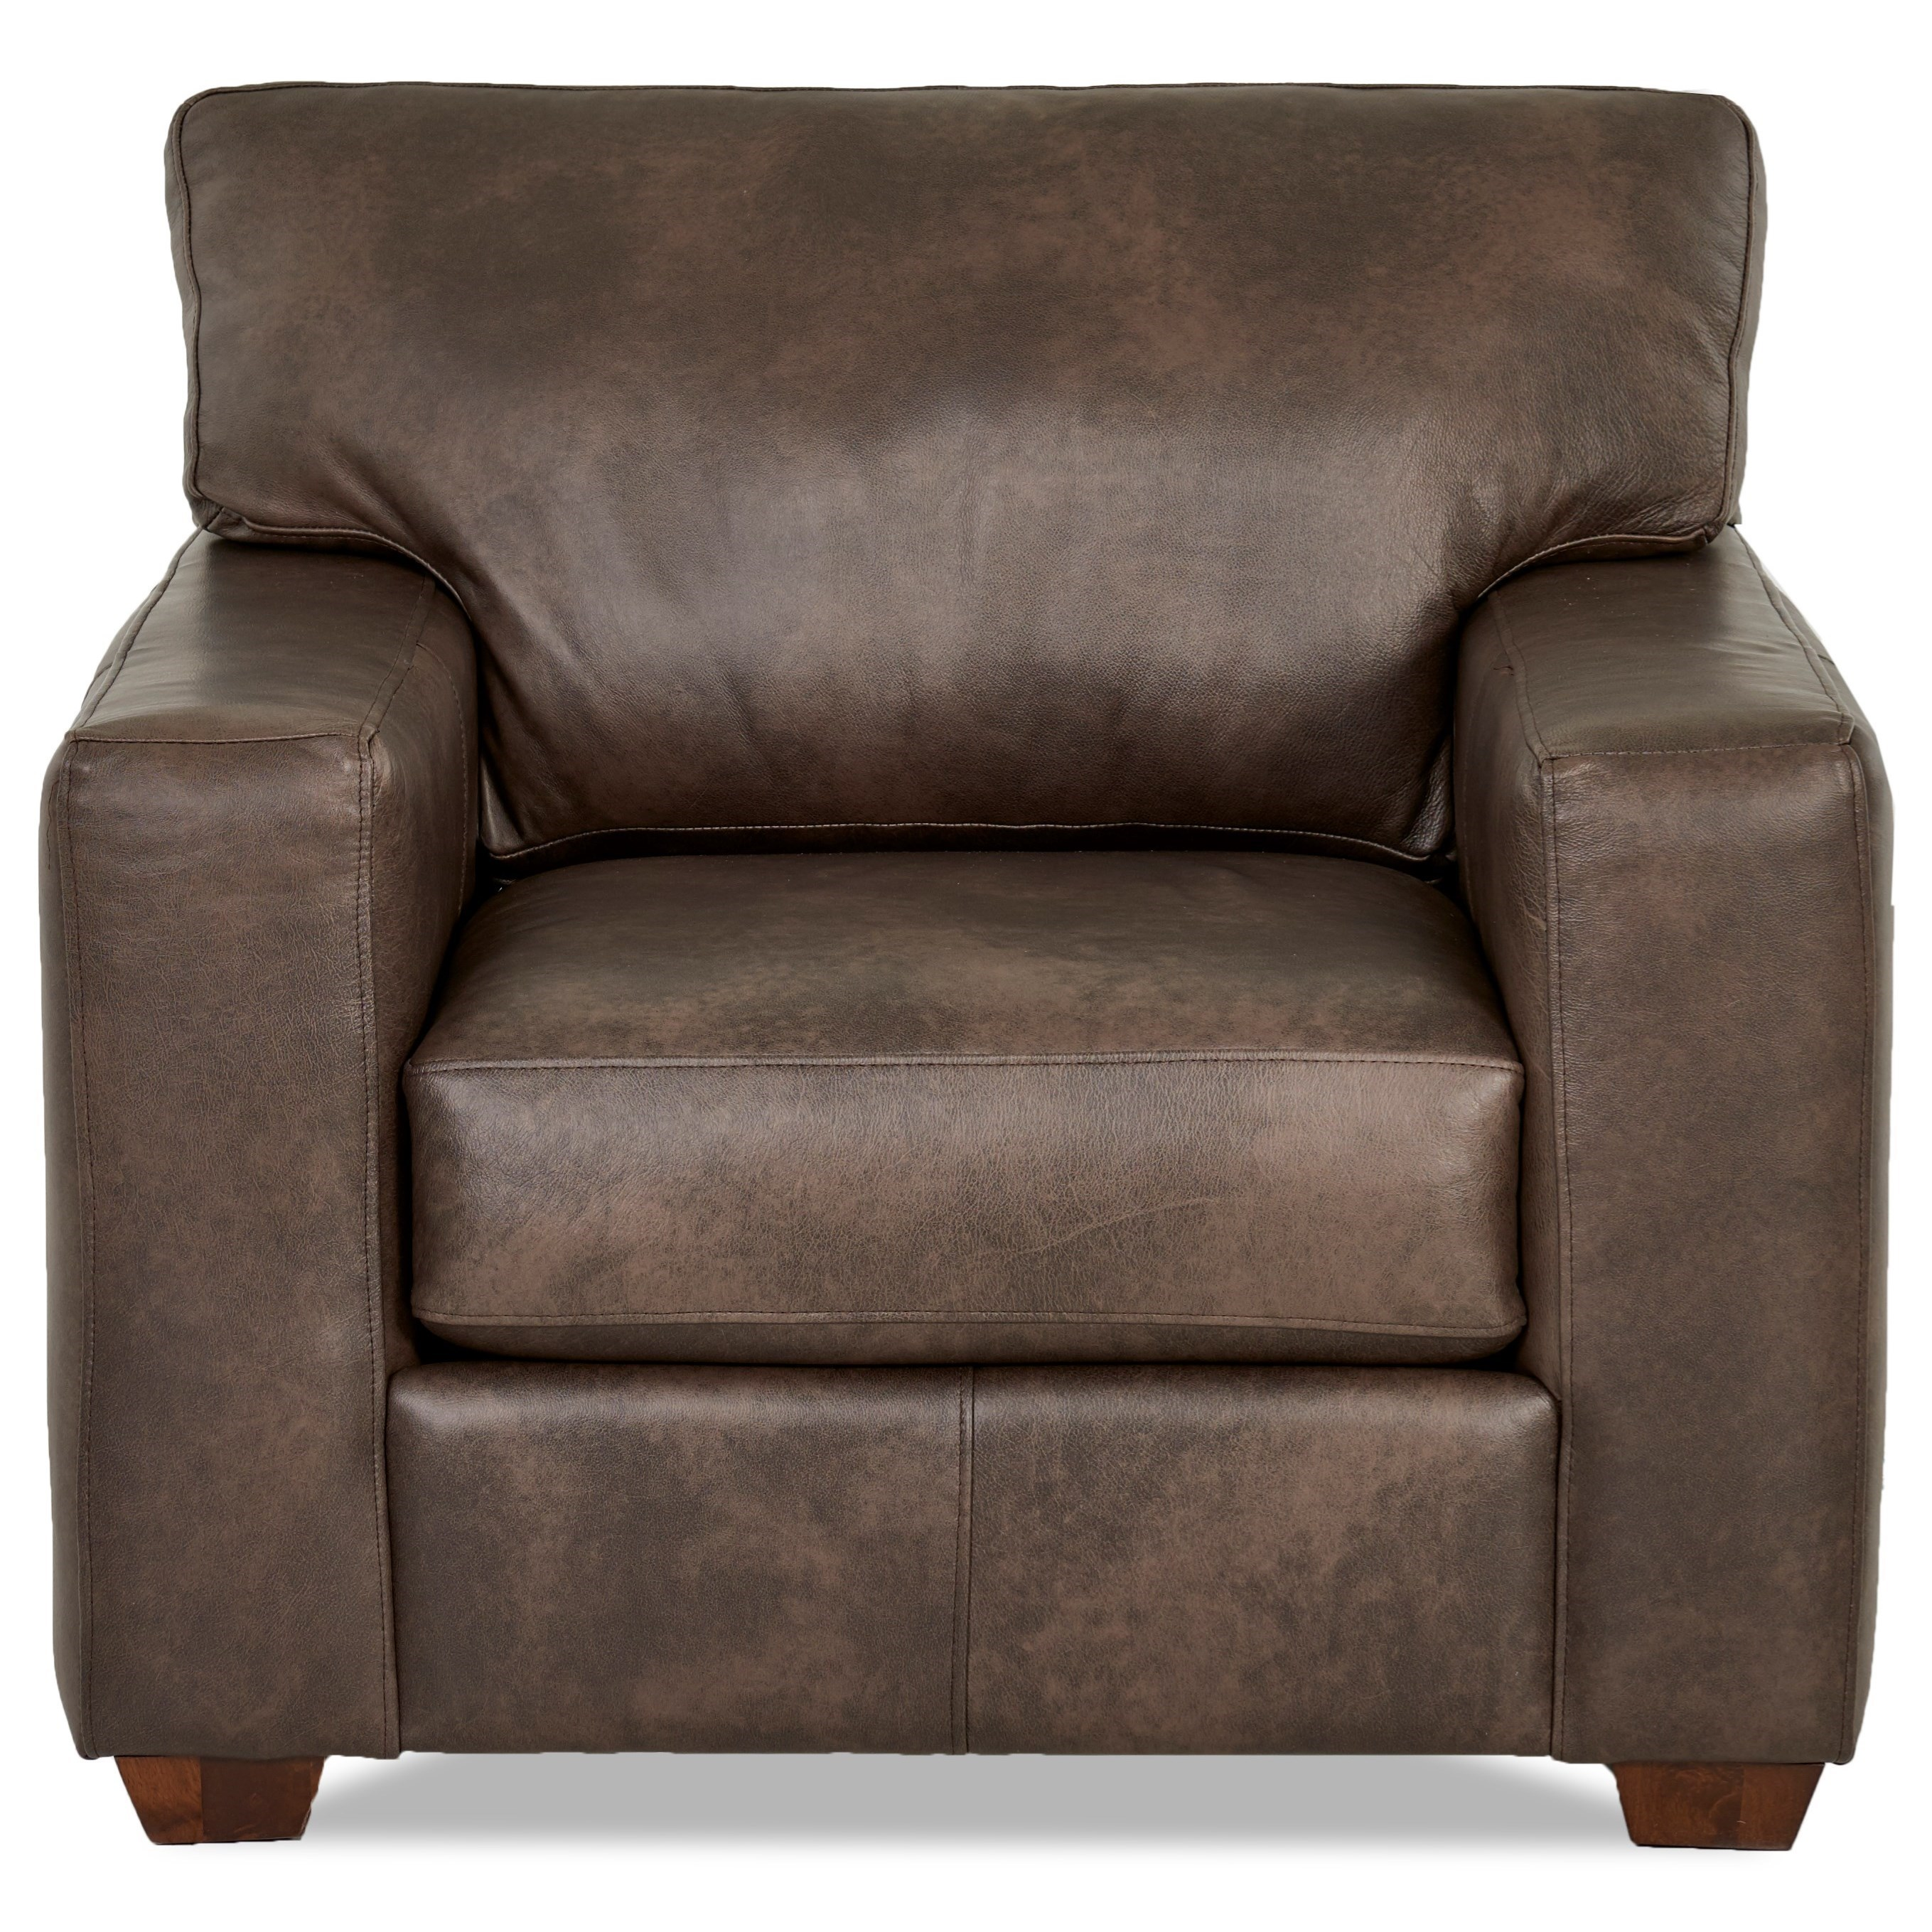 Klaussner Southport Contemporary Leather Chair